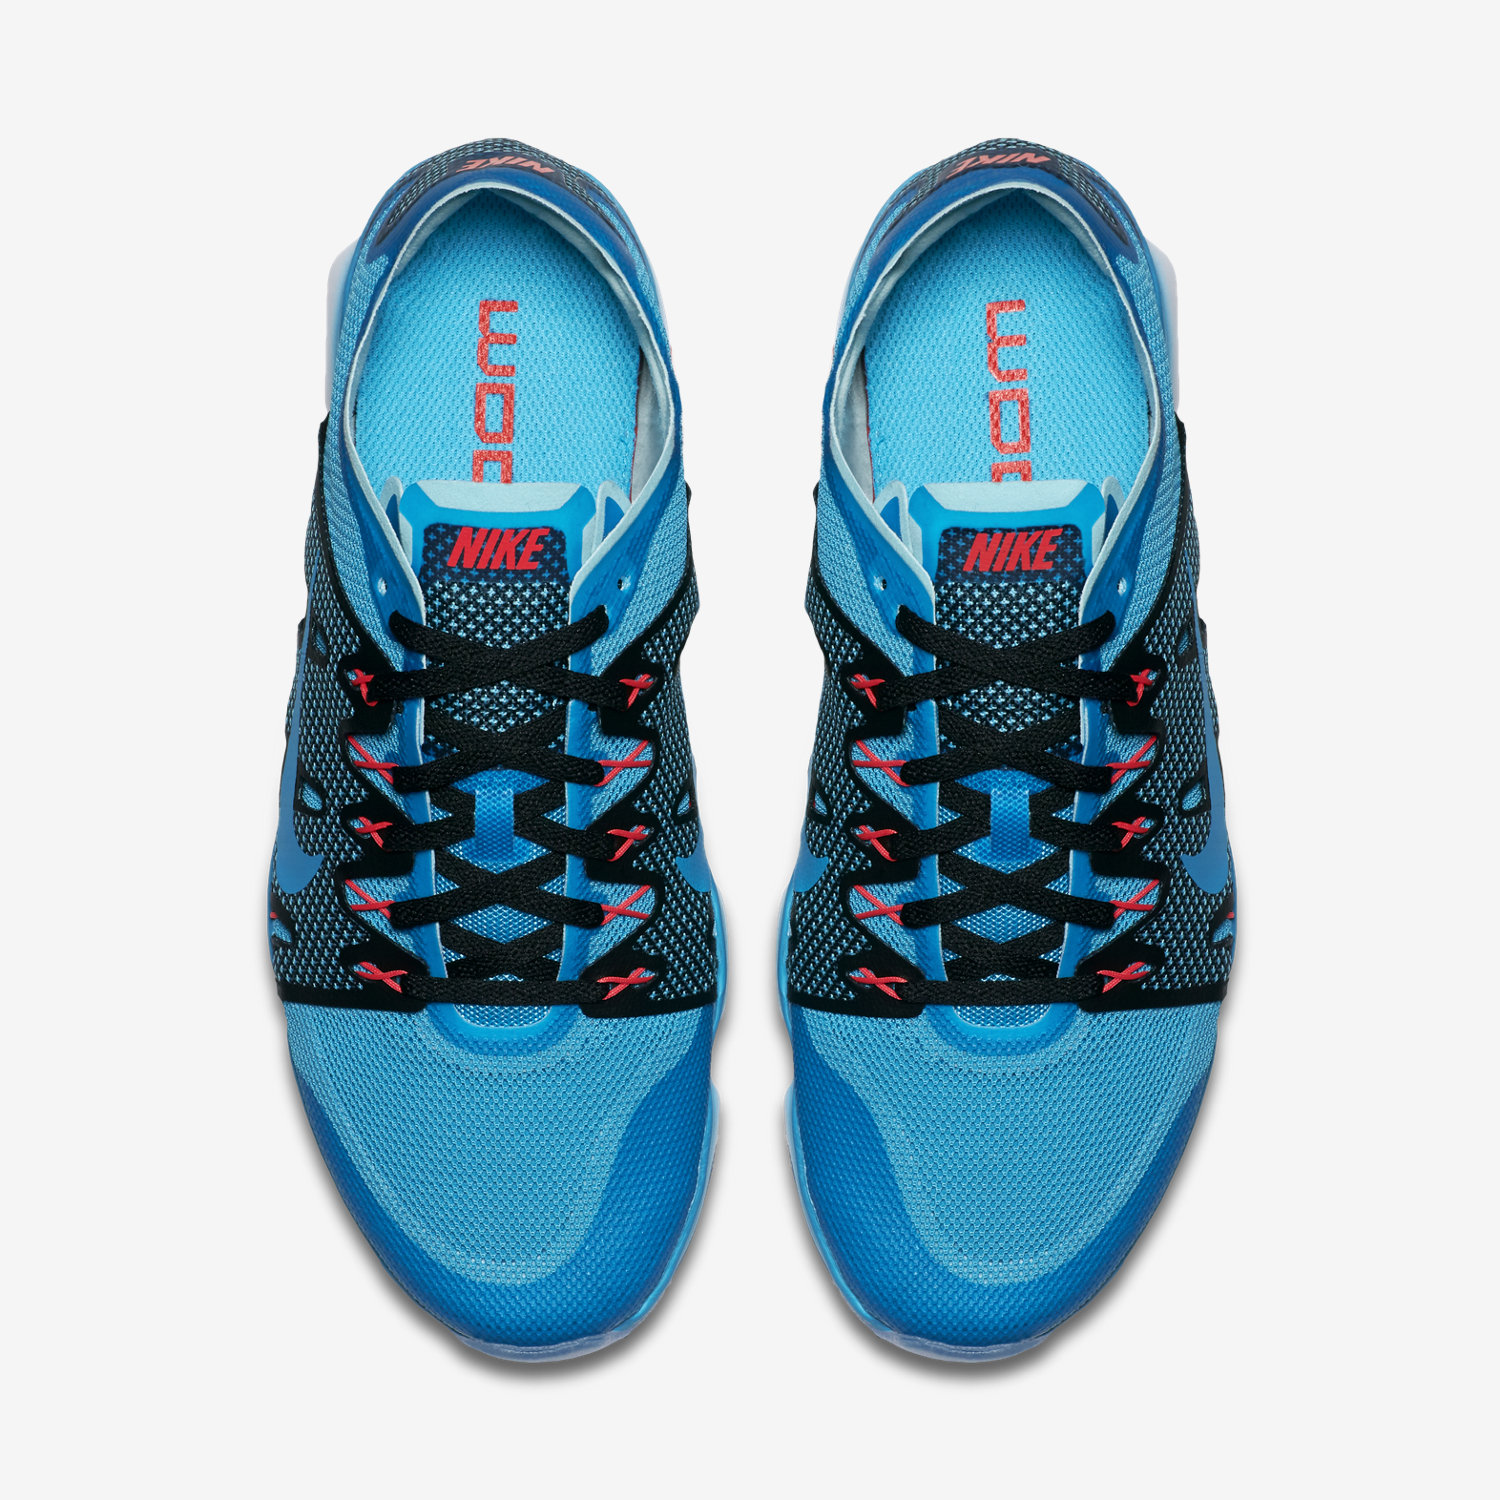 reputable site 8a020 e8c38 Nike Air Zoom Fit Agility 2 ...